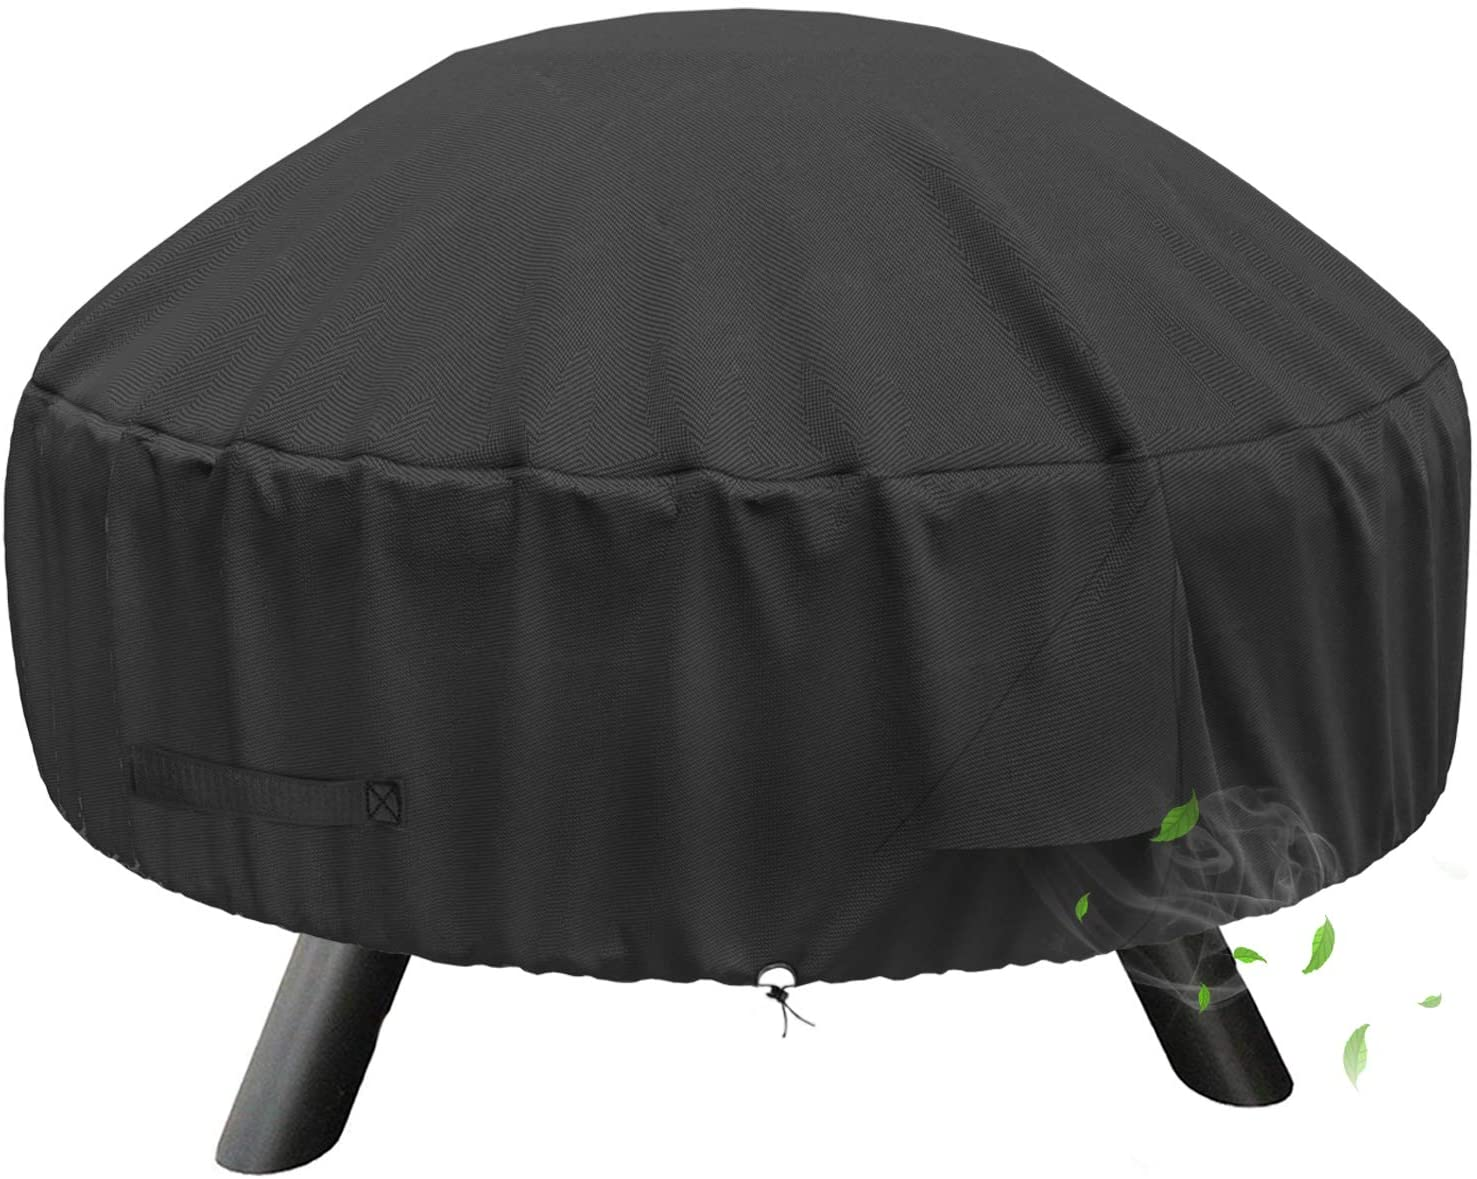 Shinestar 30 Inch Round Fire Pit Cover For 28 32 Inch Round Fire Pit Heavy Duty Waterproof Fire Bowl Cover All Season Protection 32 Dia X 13 5 H Garden Outdoor Amazon Com